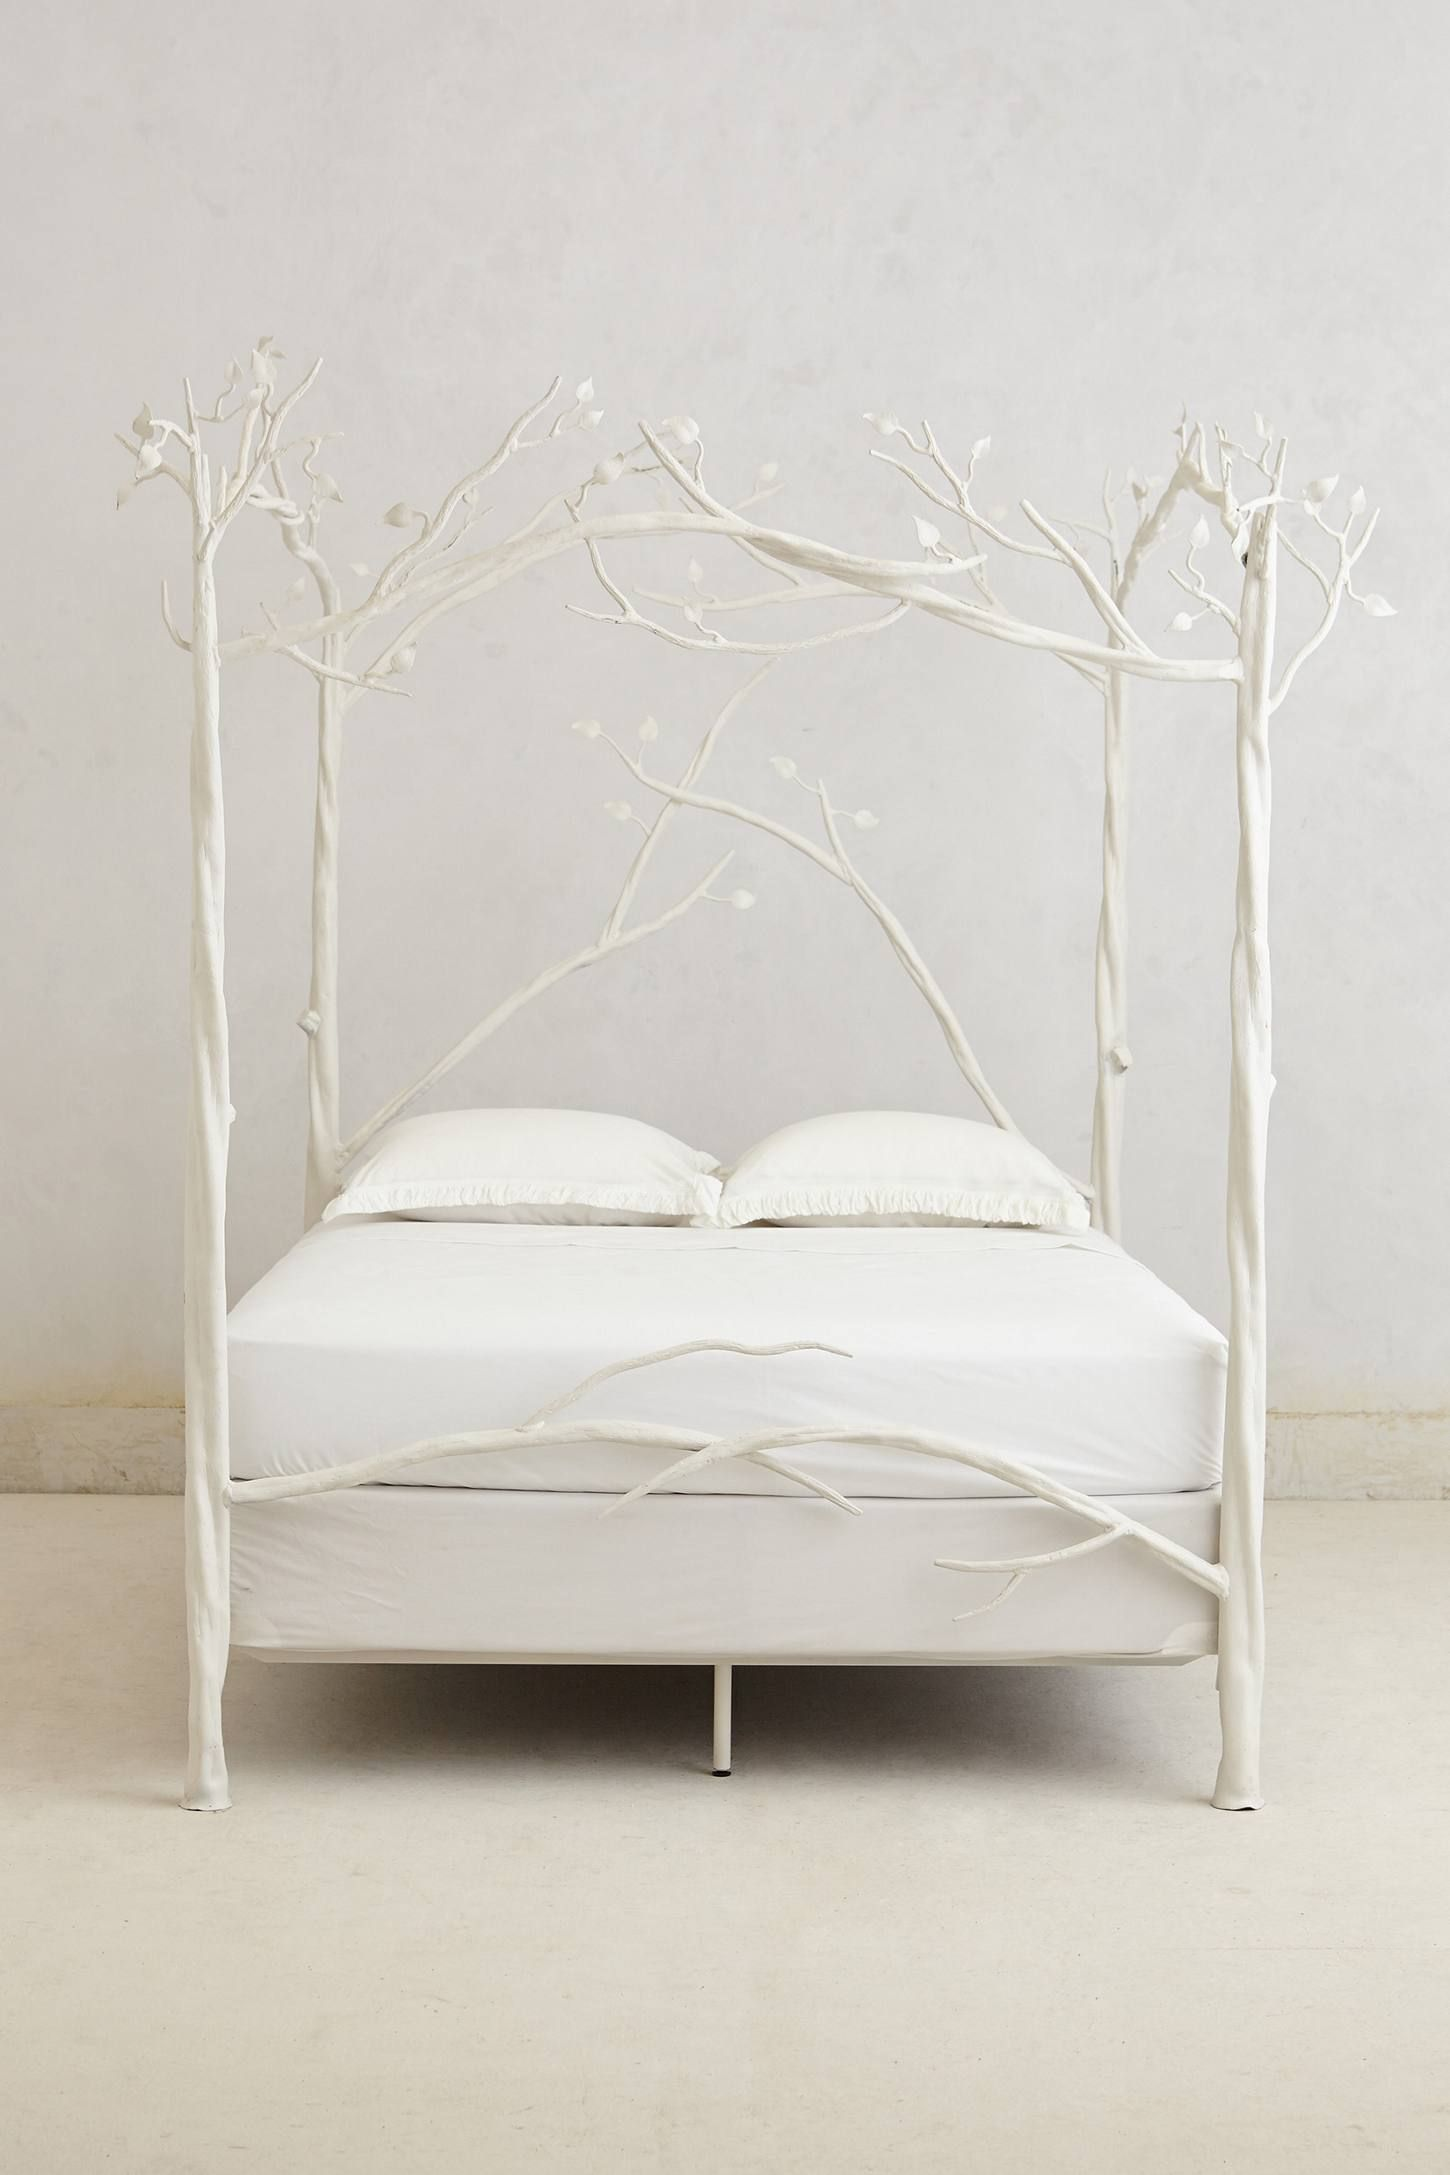 Canopy Bedroom, Furniture, Bed